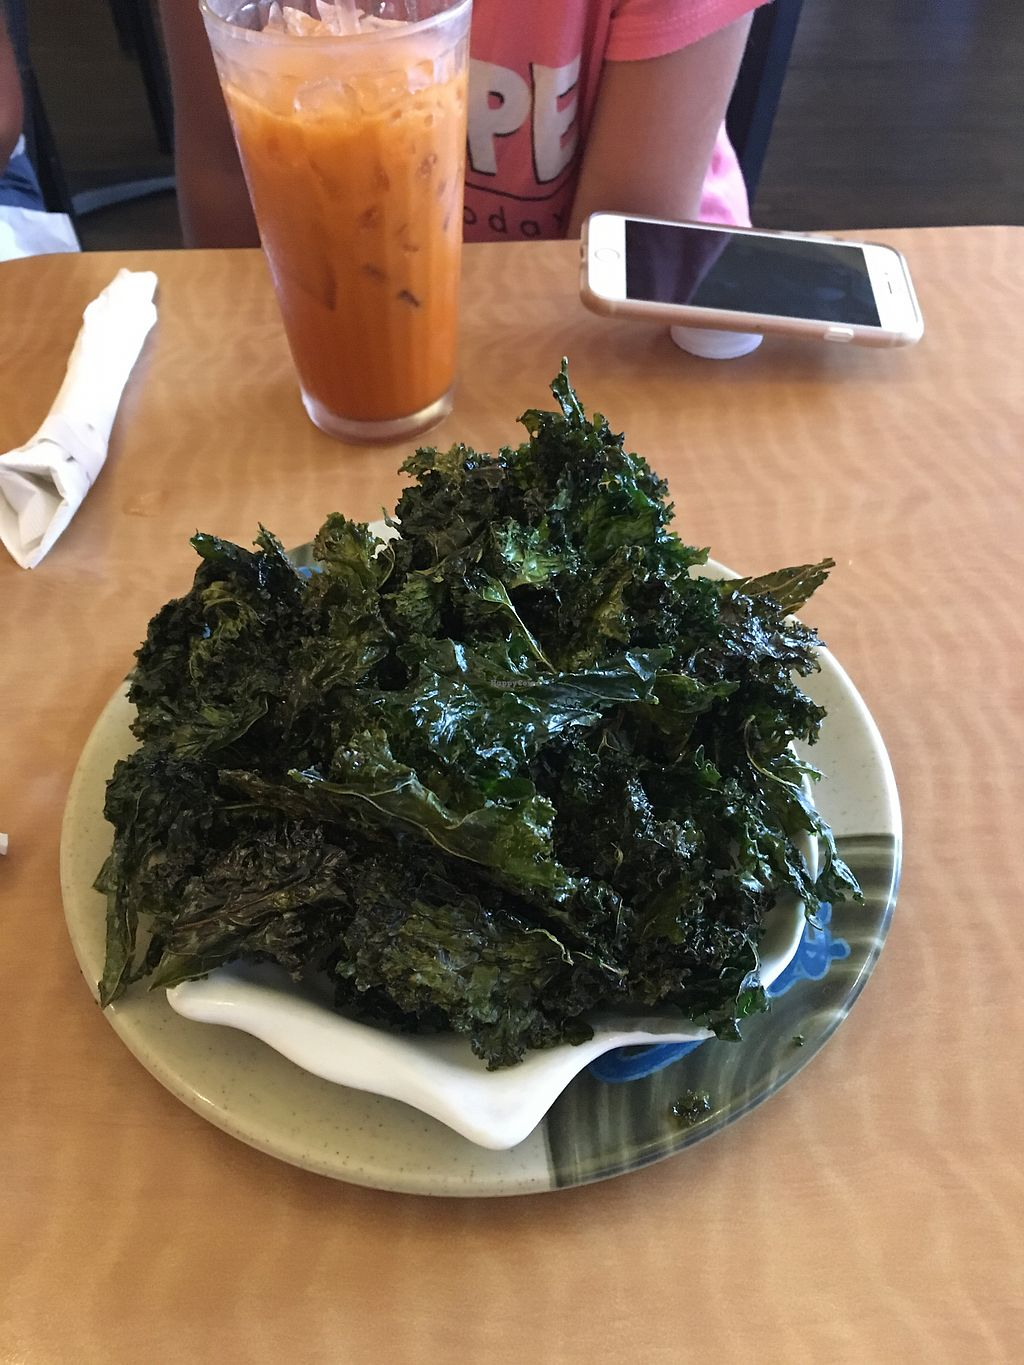 "Photo of Red Curry Vegan Kitchen  by <a href=""/members/profile/Jenny20124"">Jenny20124</a> <br/>kale chips <br/> August 12, 2017  - <a href='/contact/abuse/image/44825/291780'>Report</a>"